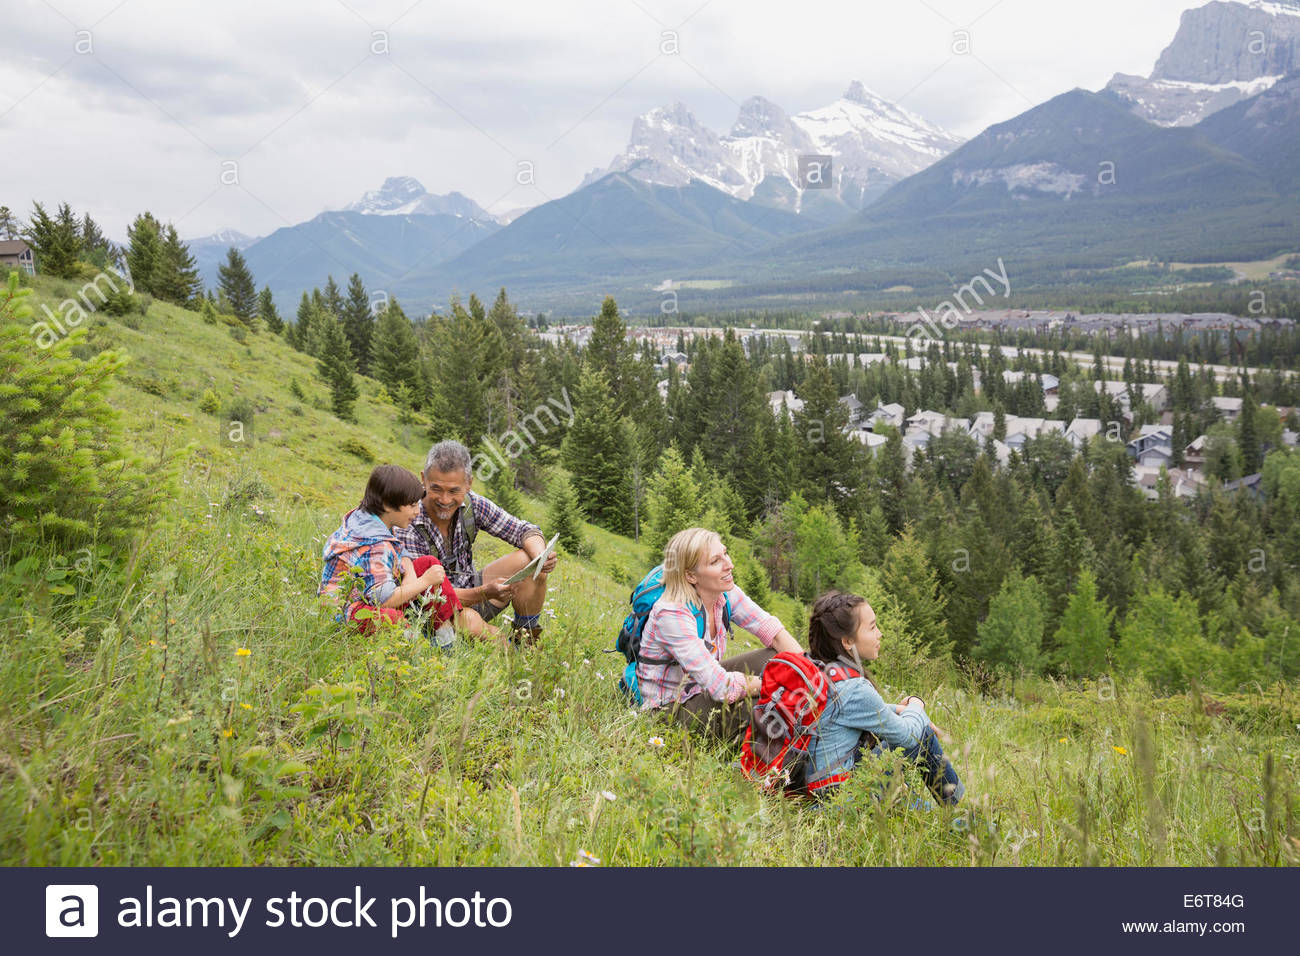 Family overlooking view from rural hillside - Stock Image